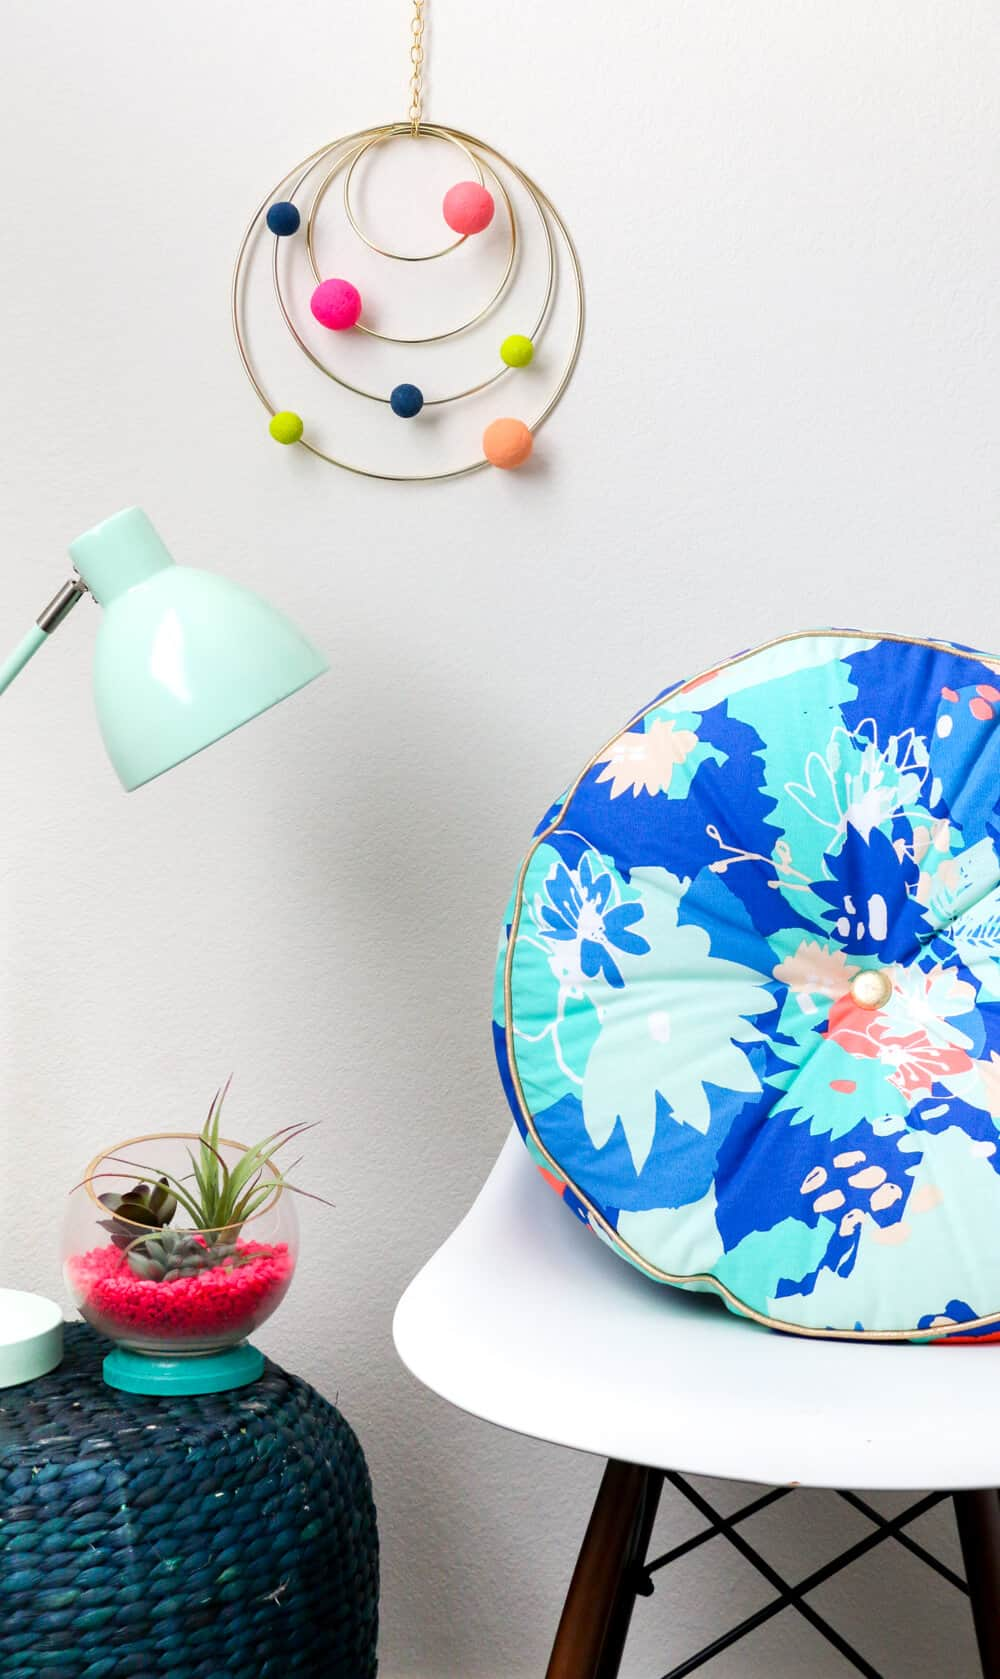 DIY Colorful Abstract Solar System Mobile... a colorful addition to any room!